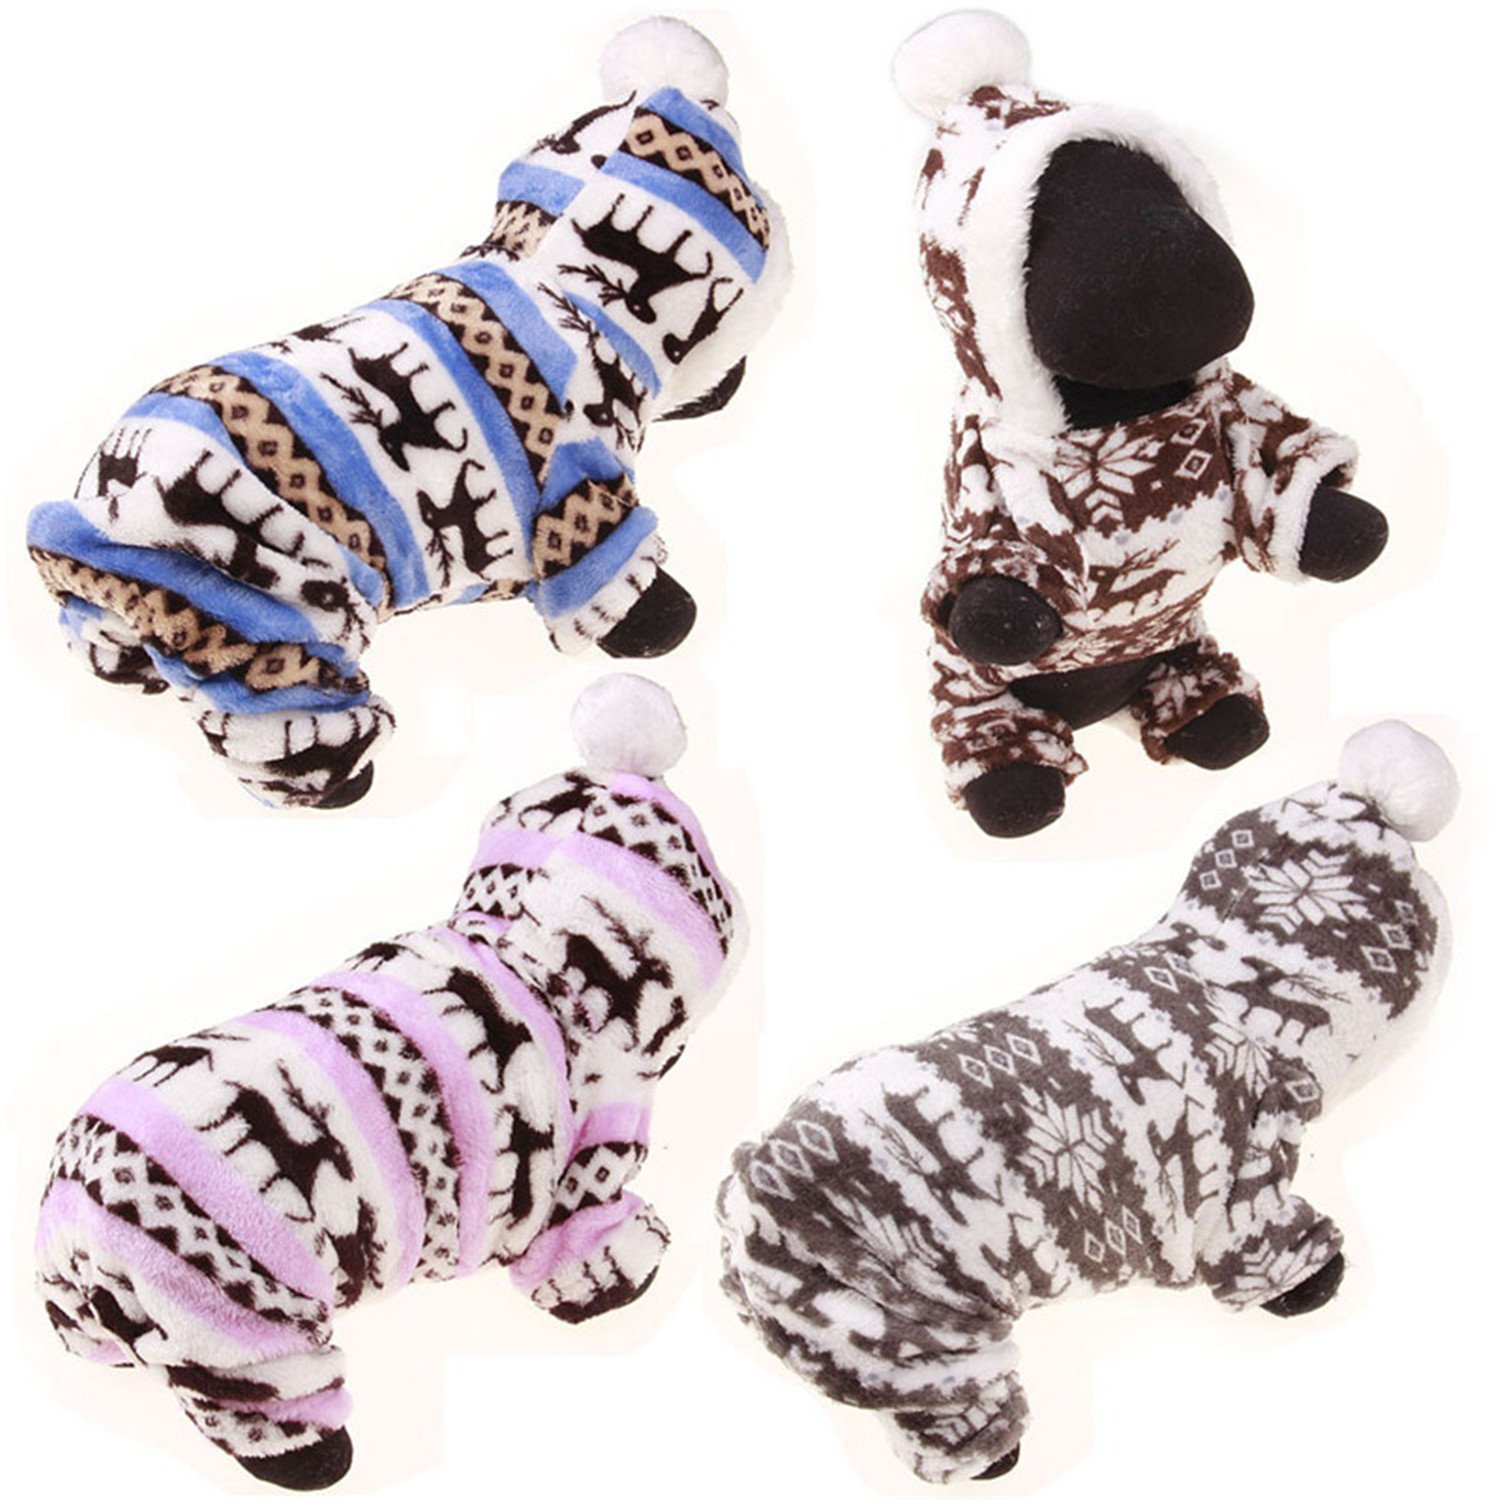 Amazon.com : HuoGuo Winter Pet Dog Clothes For Small Dogs Deer Warm Fleece Coat Jackets Costume Clothing For Puppy Teddy Chihuahua Hoodie Apparel Pink XL ...